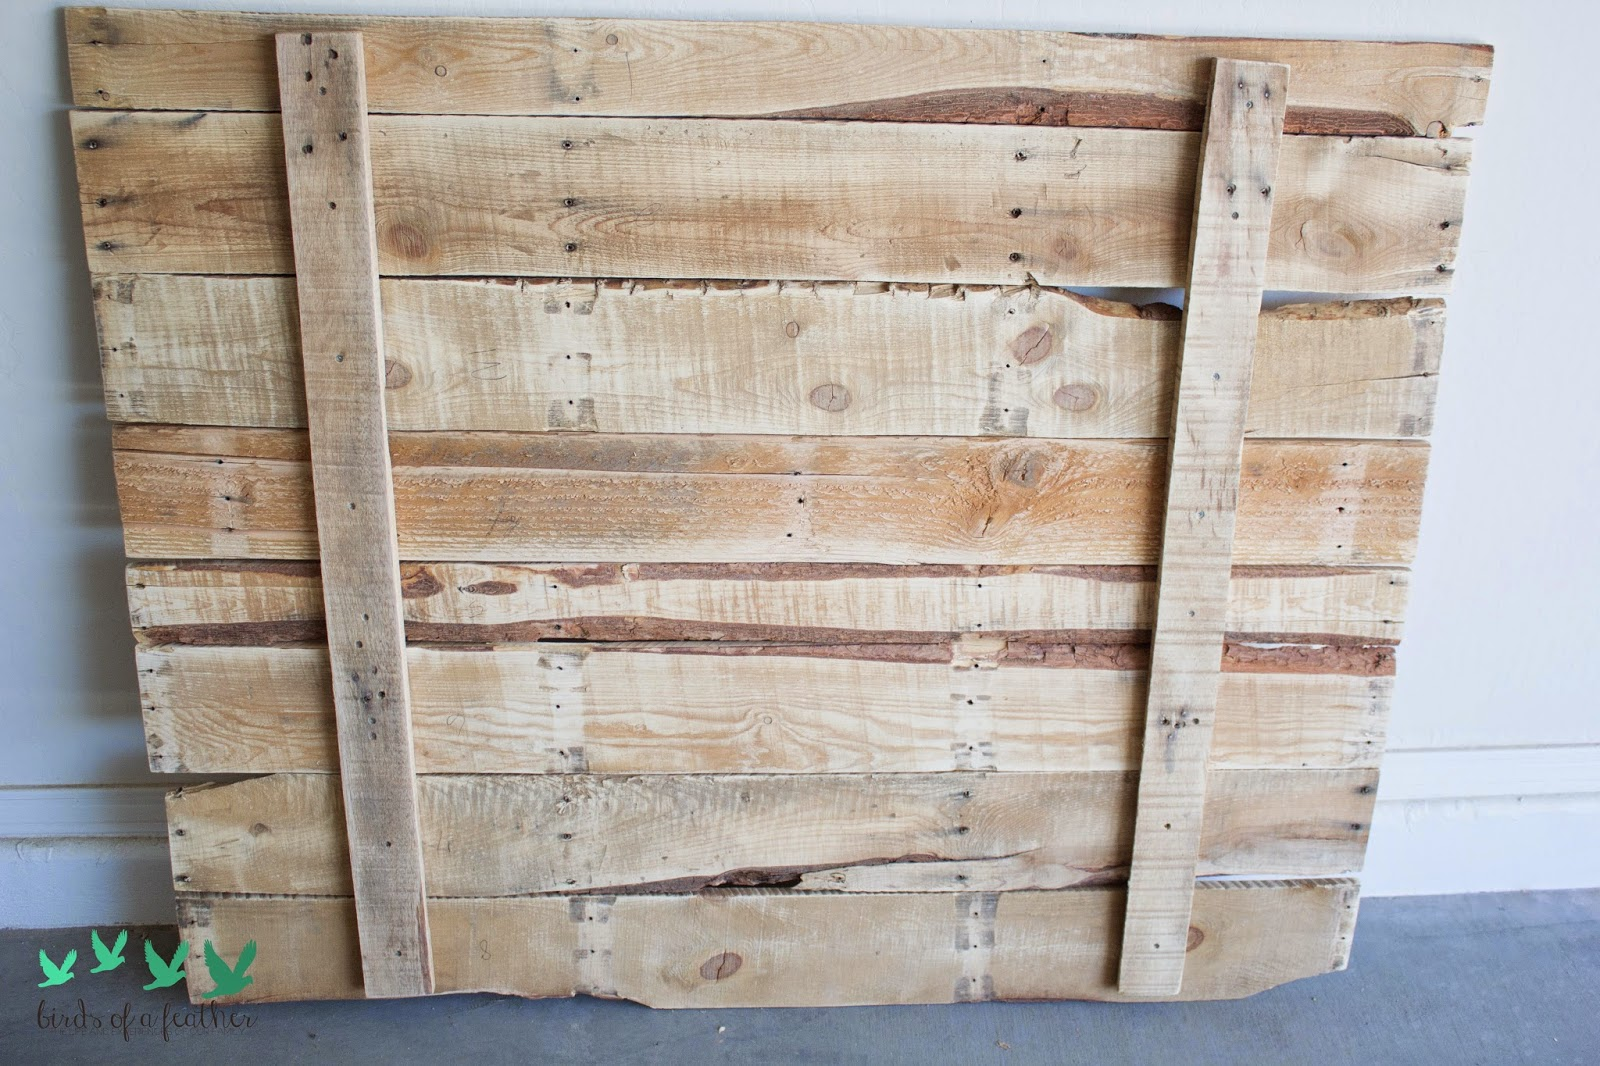 We Used Some Of The Smaller Strips From Pallet To Use Mount Pieces Together Did Have Cut Down Fit Way Wanted It